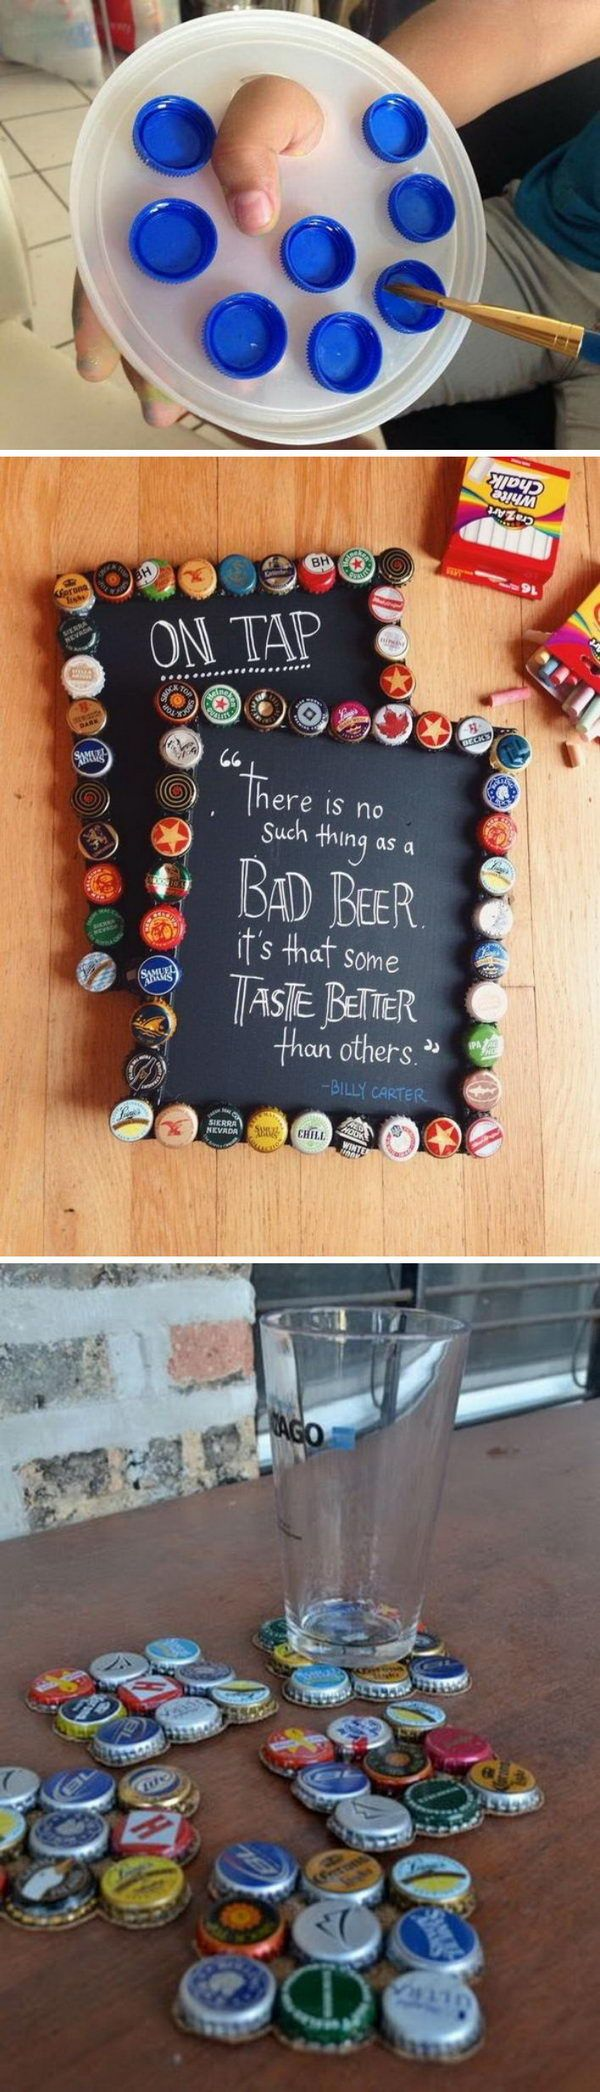 25+ Awesome Ideas & Tutorials to Craft with Bottle Caps 2017